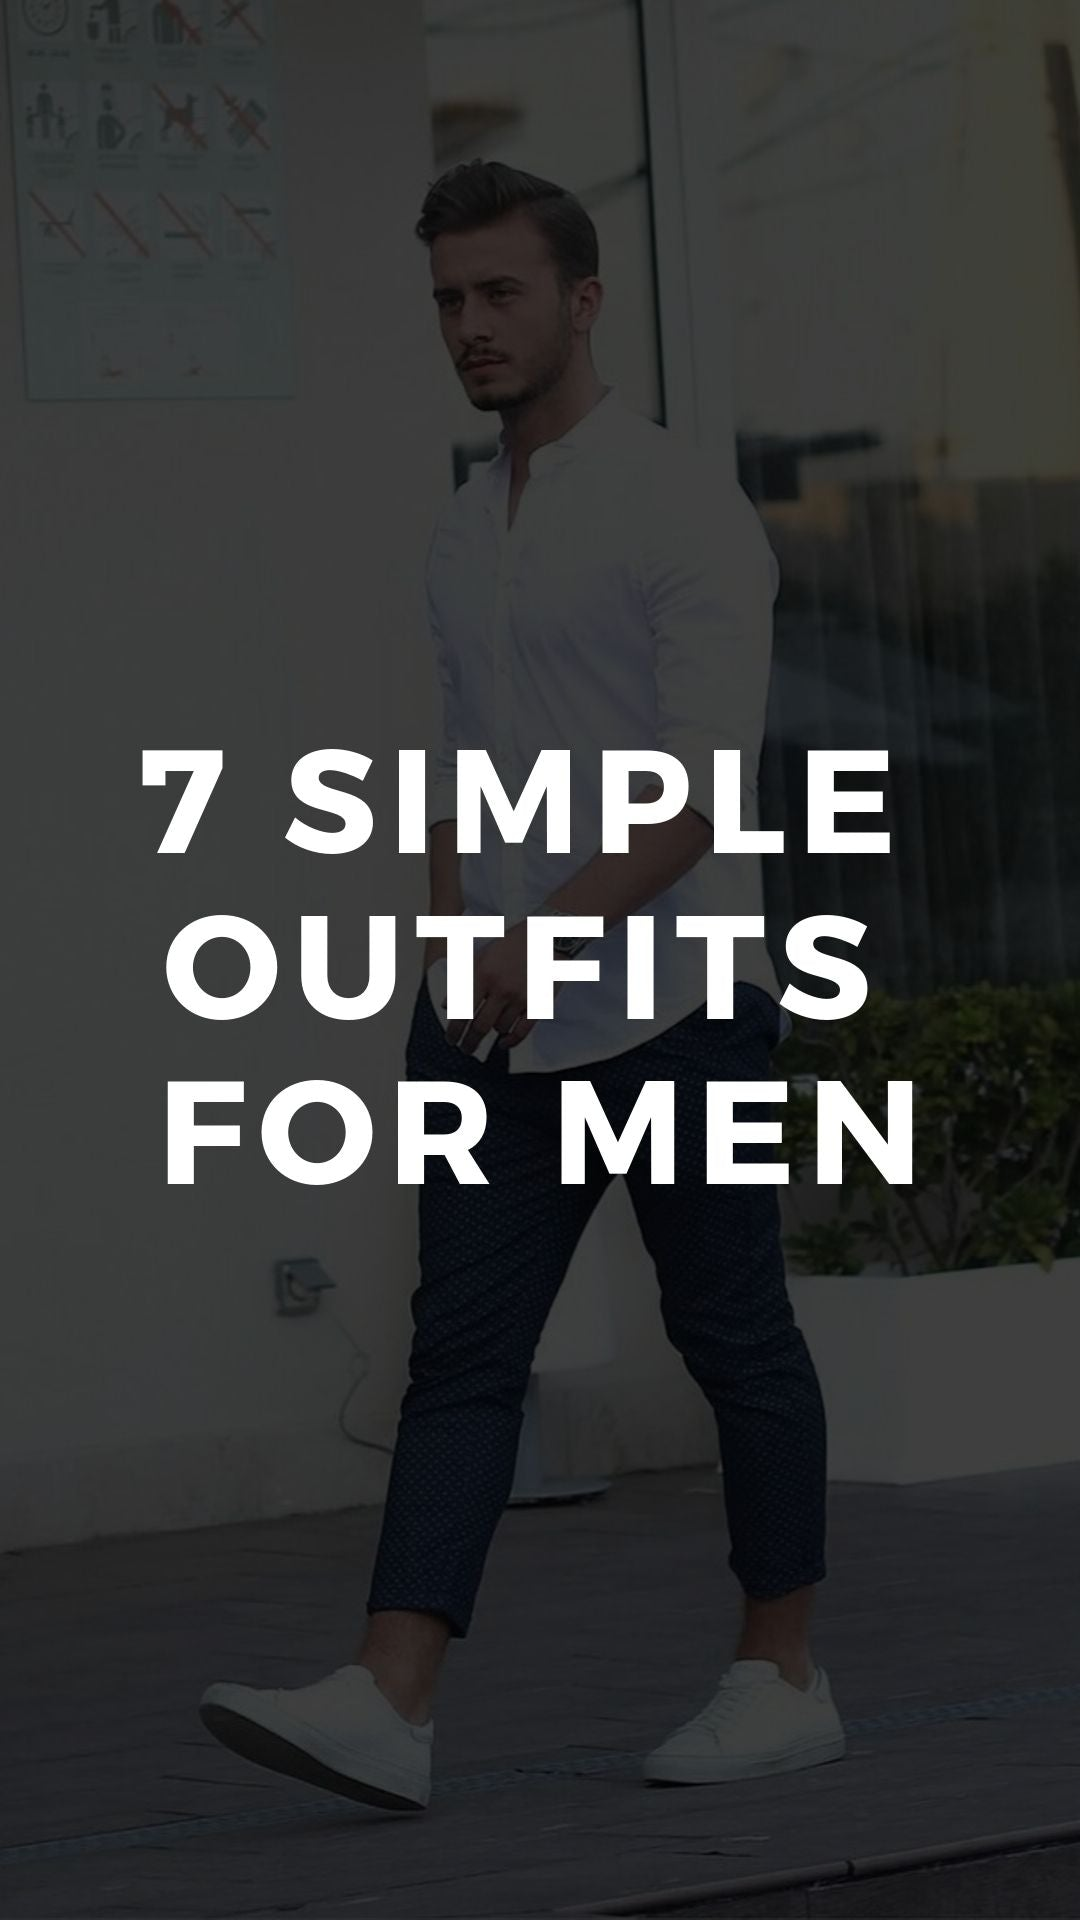 7 SIMPLE  OUTFITS  FOR MEN